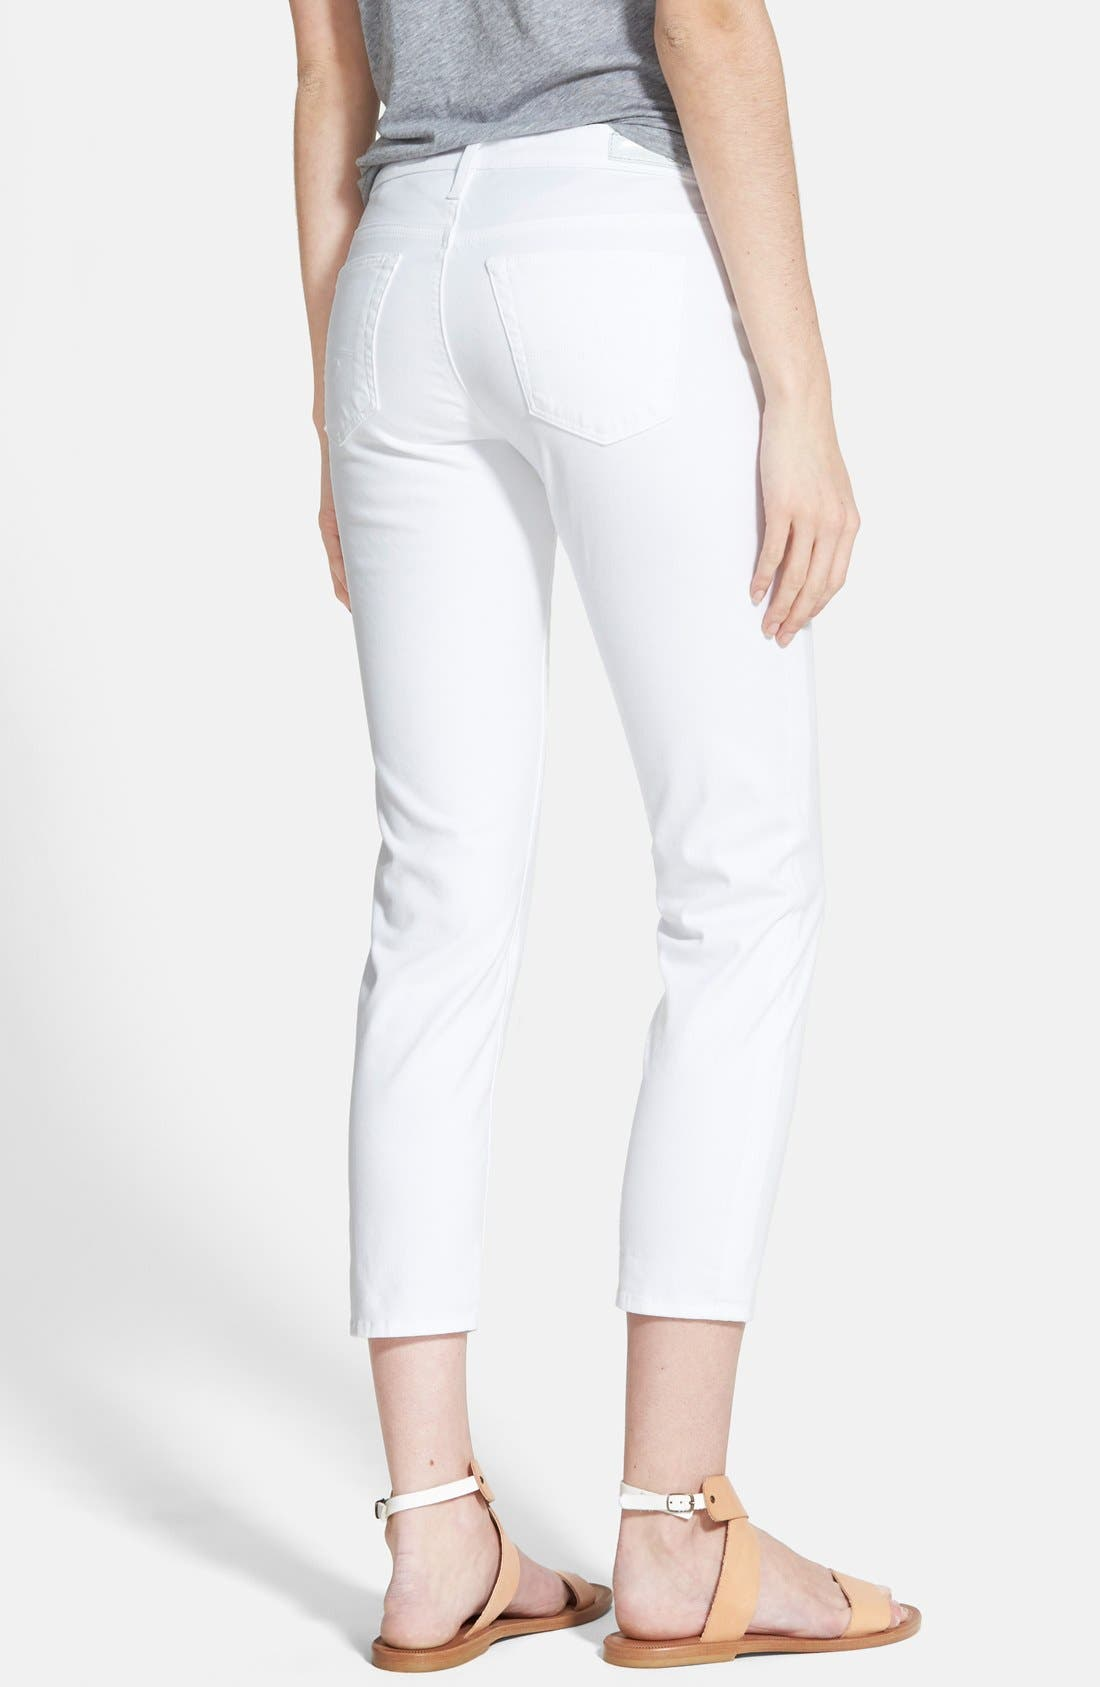 'Stilt' Cigarette Leg Crop Jeans,                             Alternate thumbnail 2, color,                             White